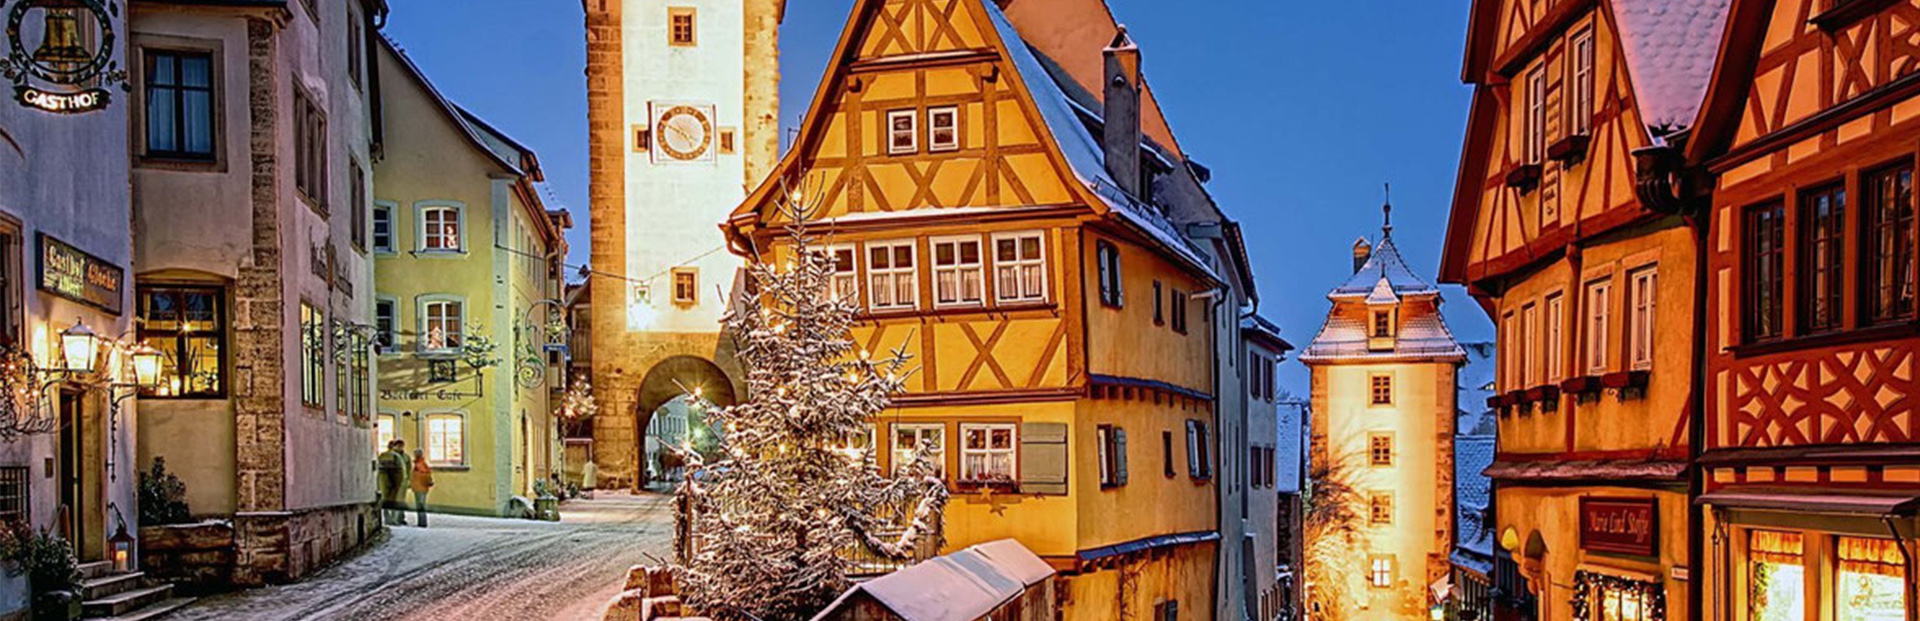 slider_0004_christmas-in-rothenburg-european-best-destinations